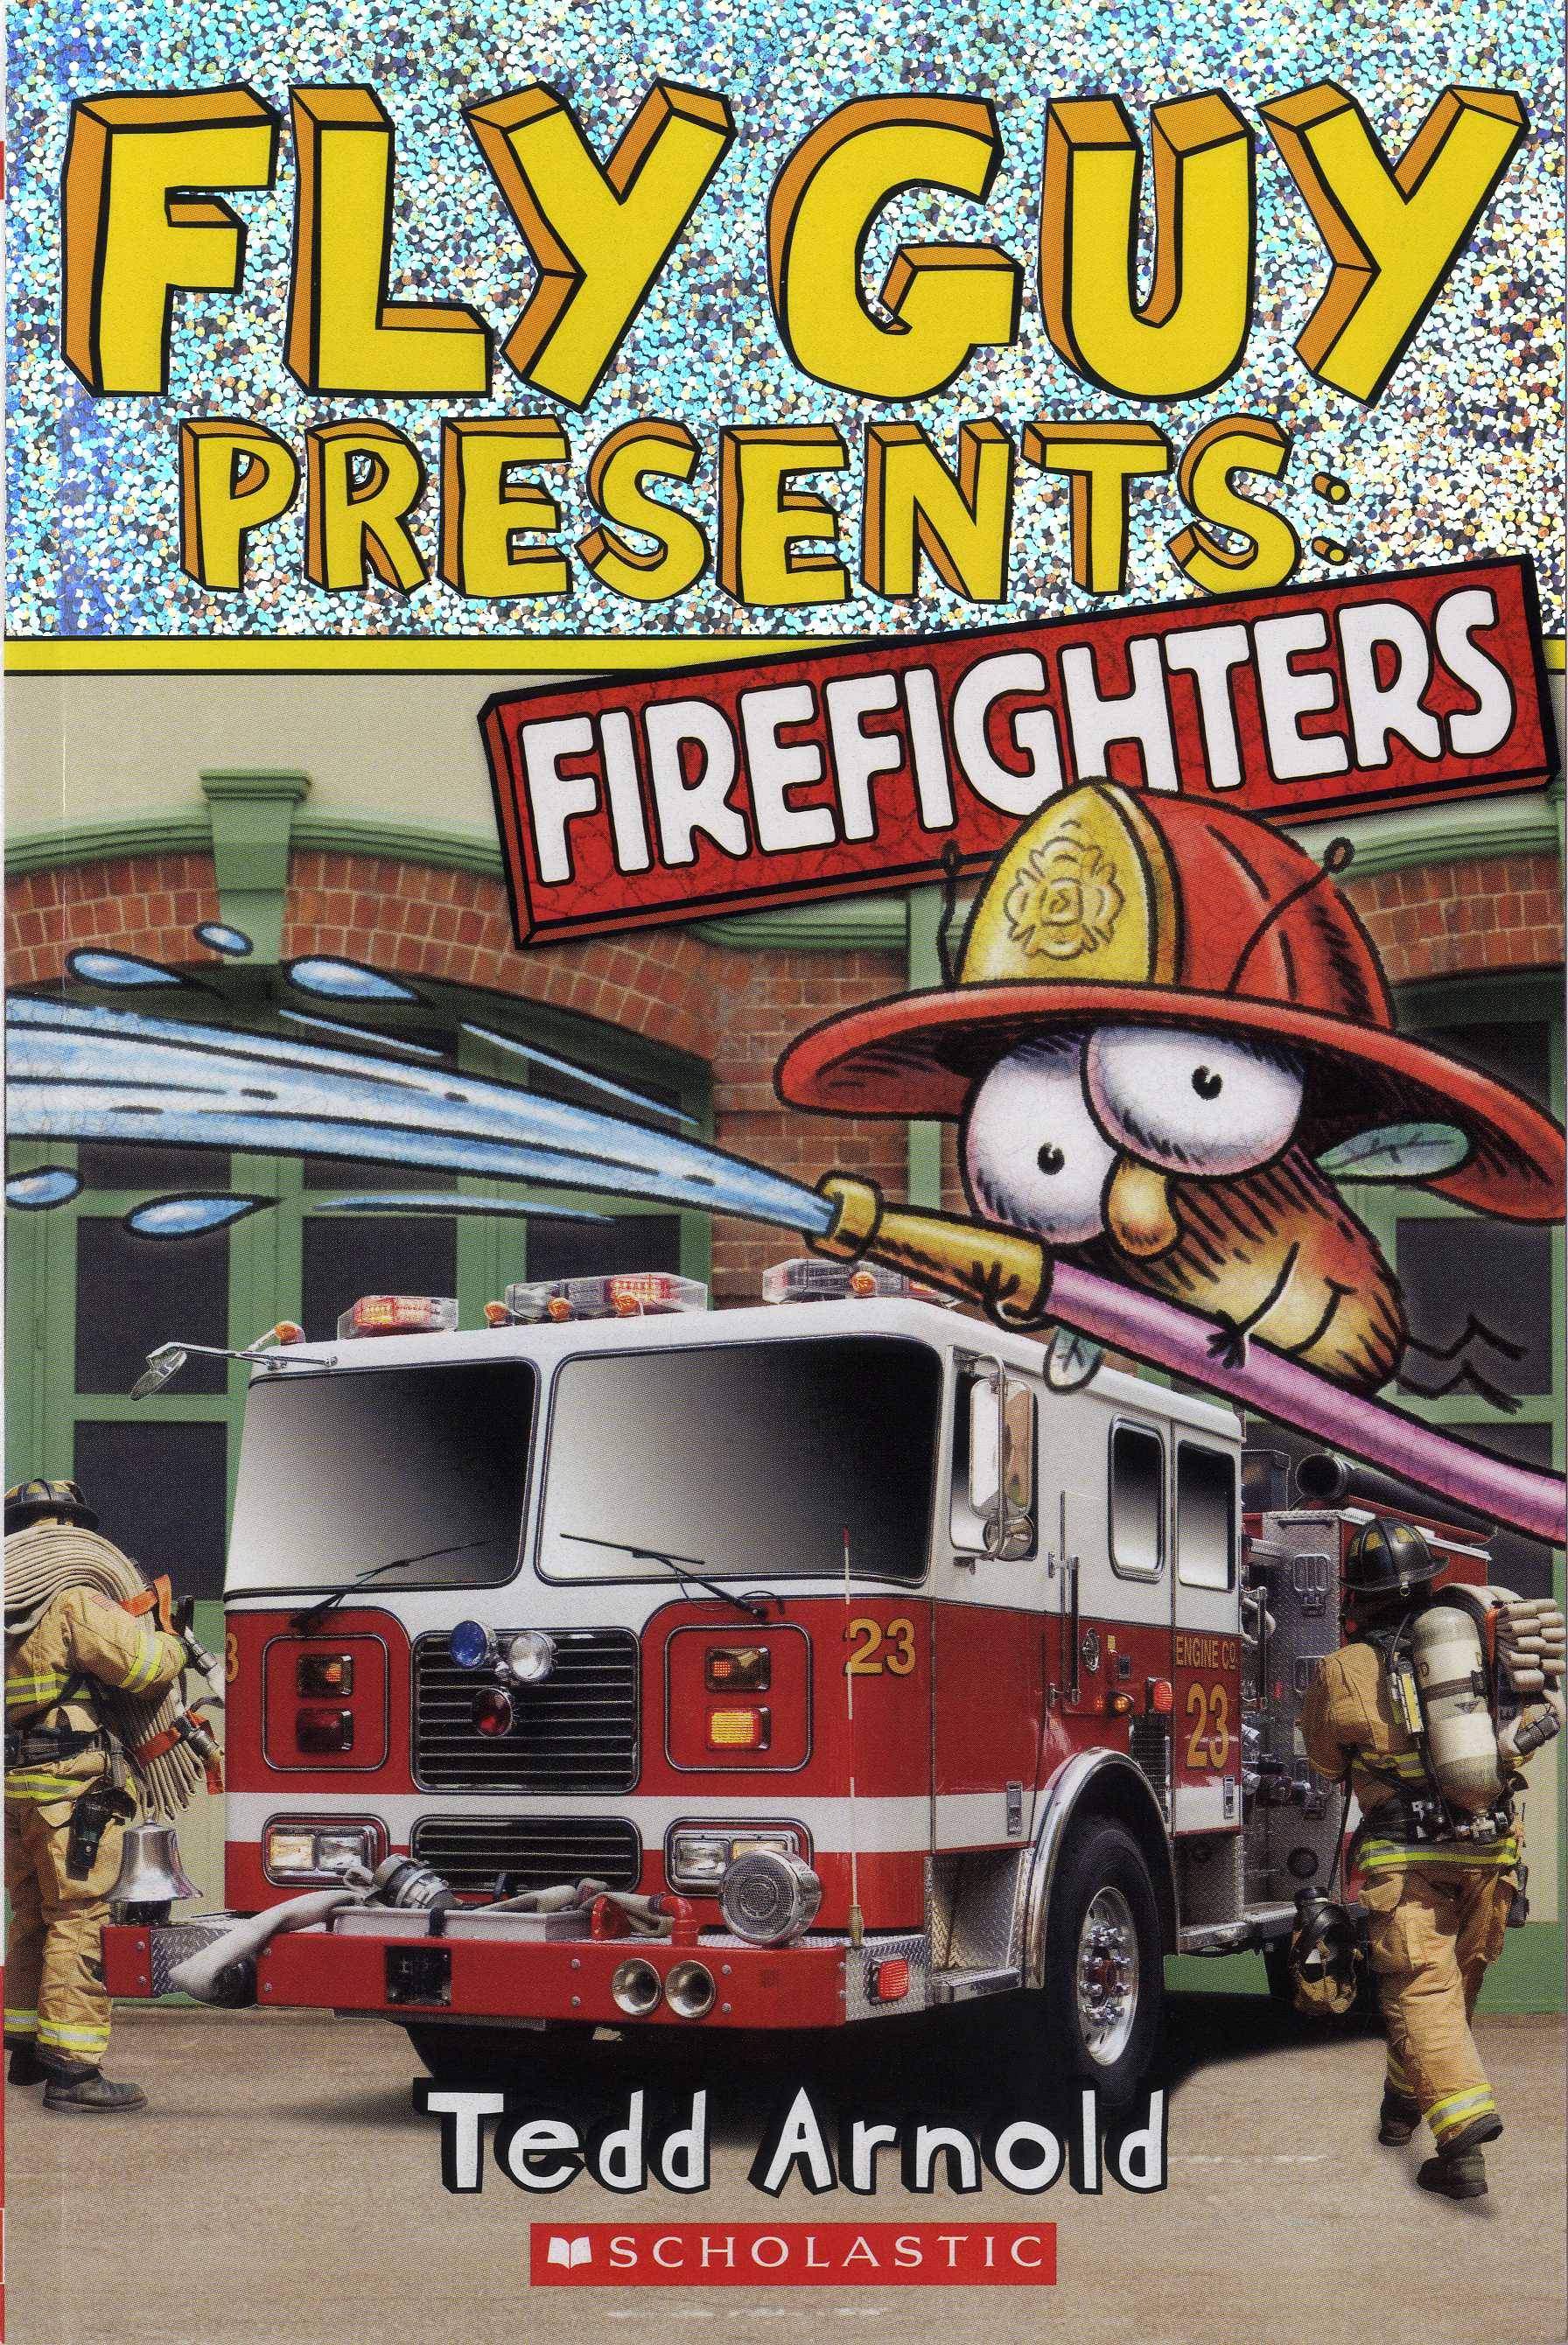 Fly Guy Presents : Firefighters (PB)